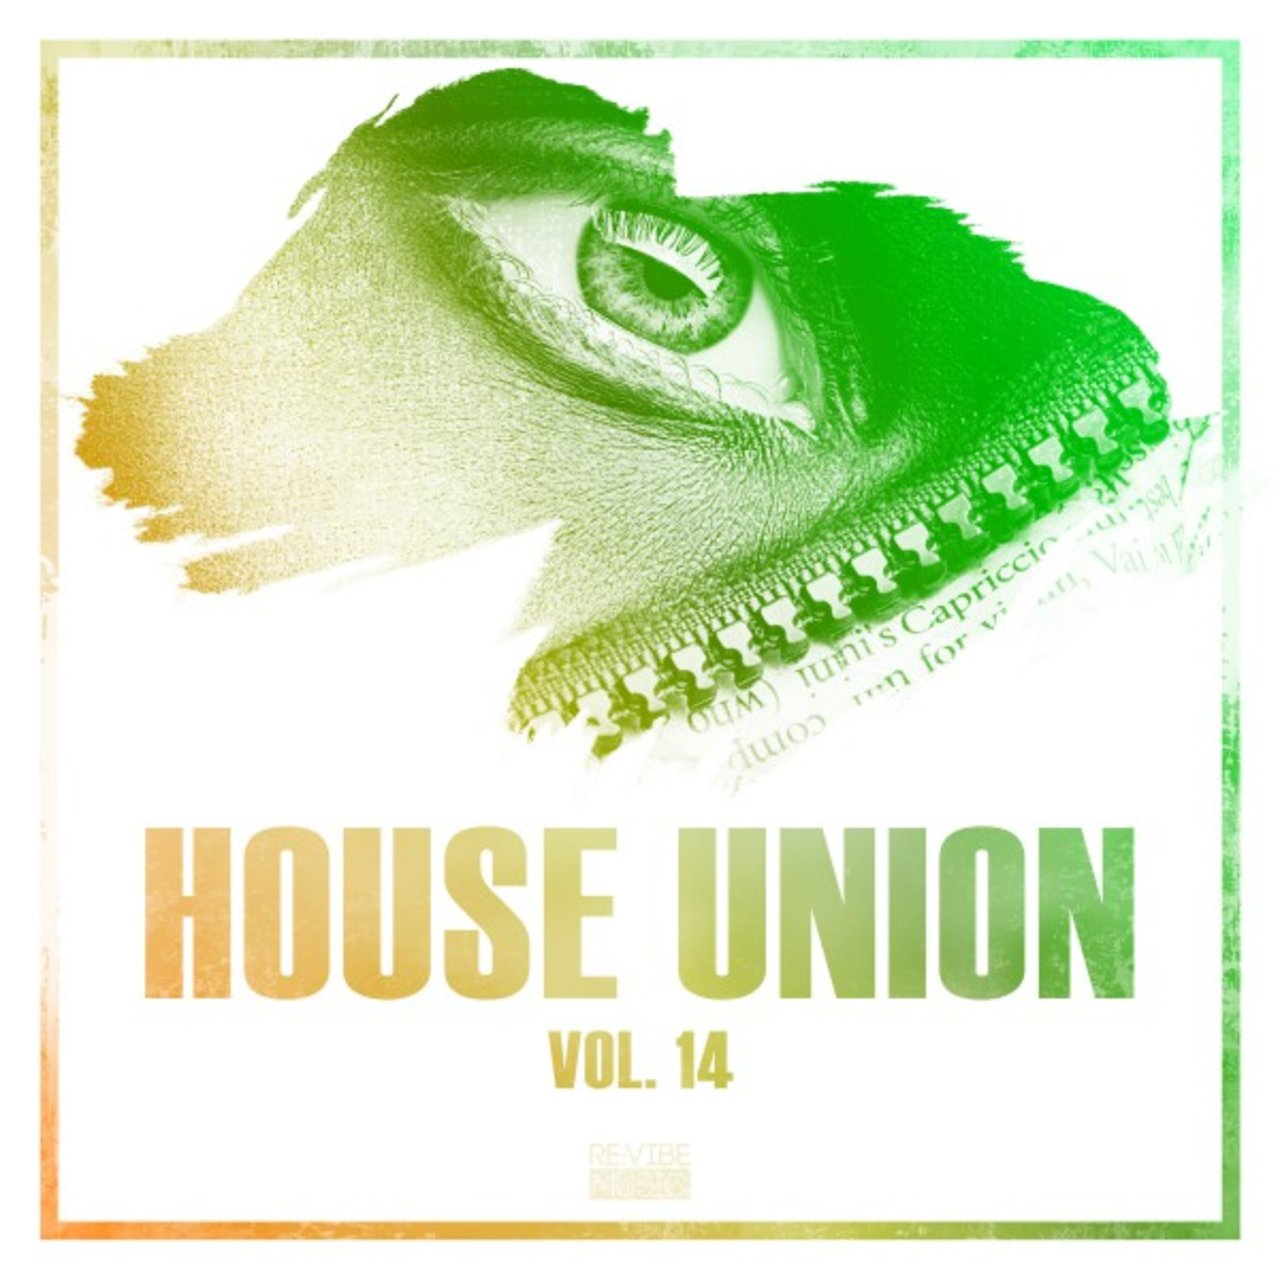 House Union, Vol. 14